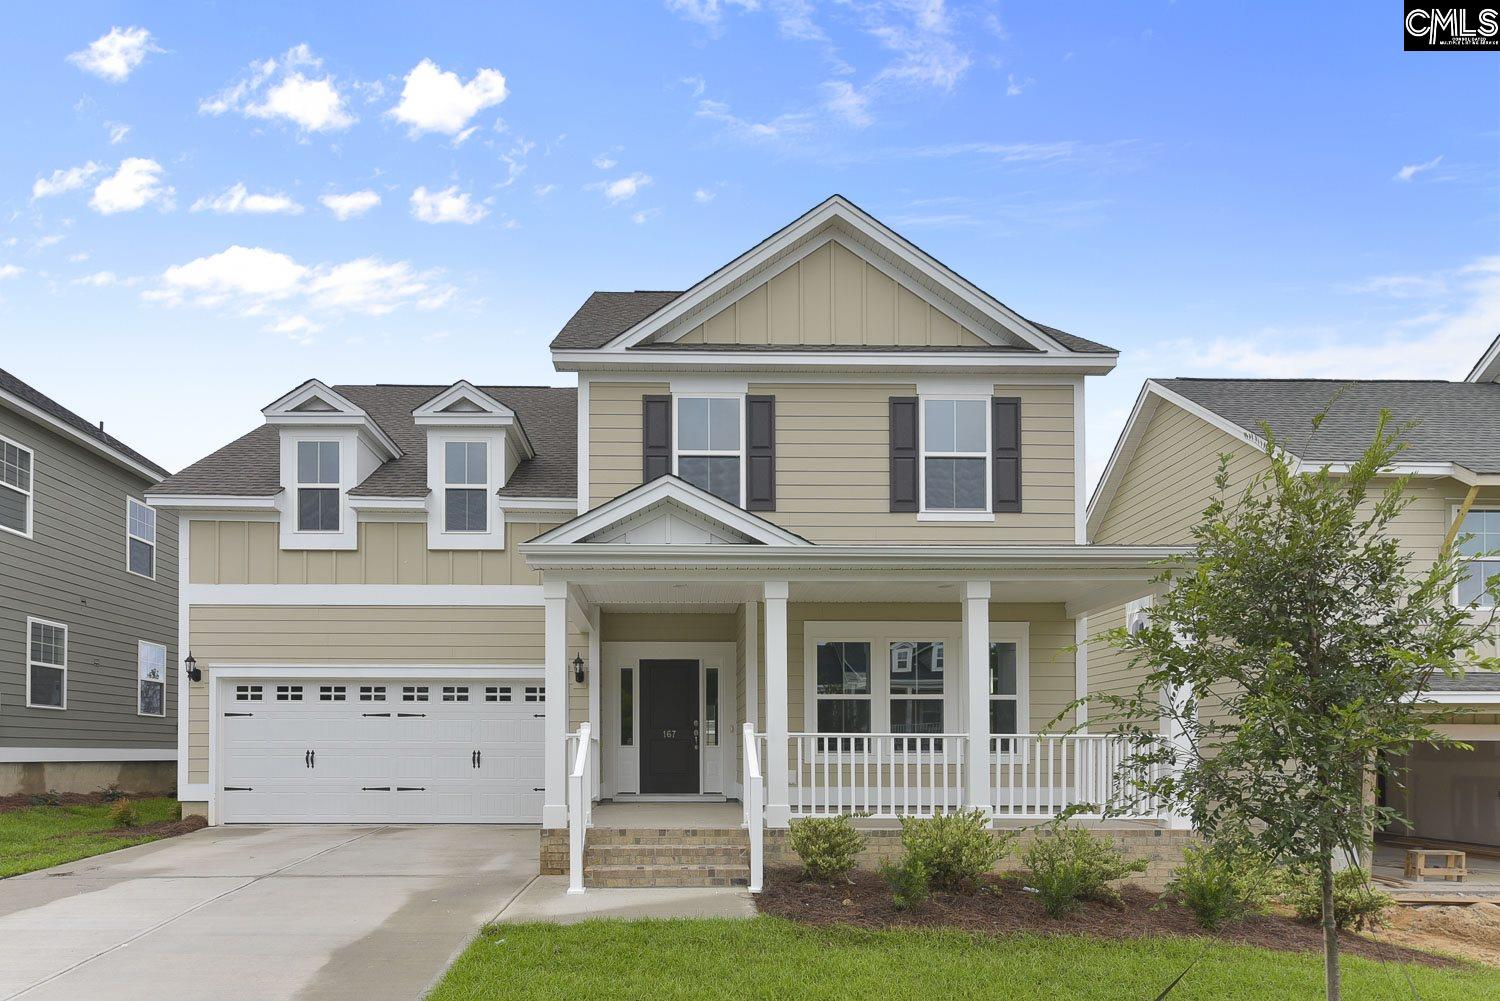 167 Baysdale Columbia, SC 29229